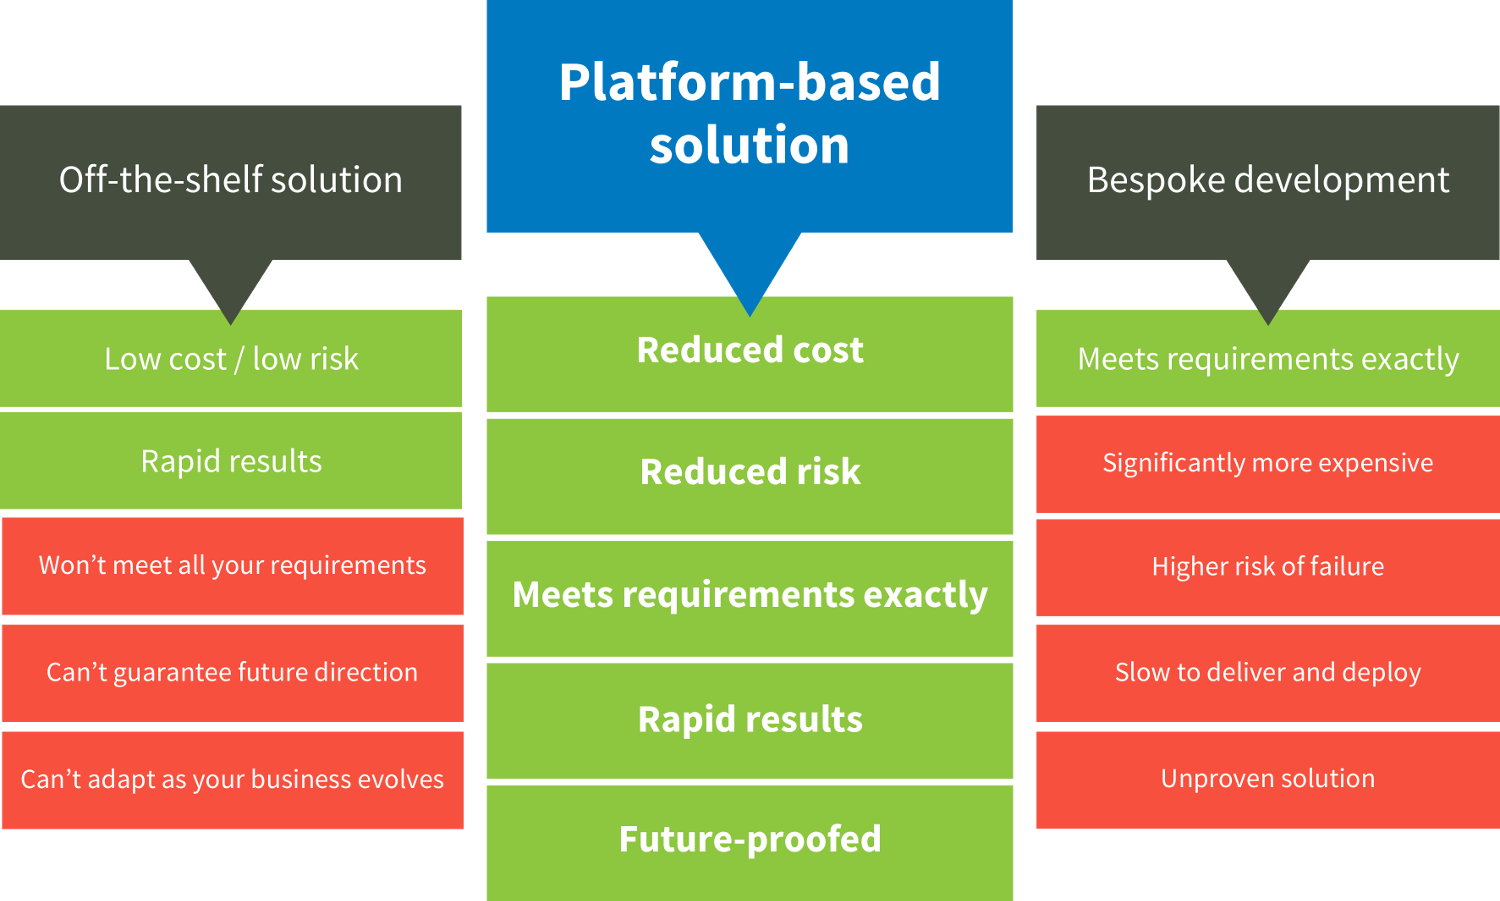 Platform-based development